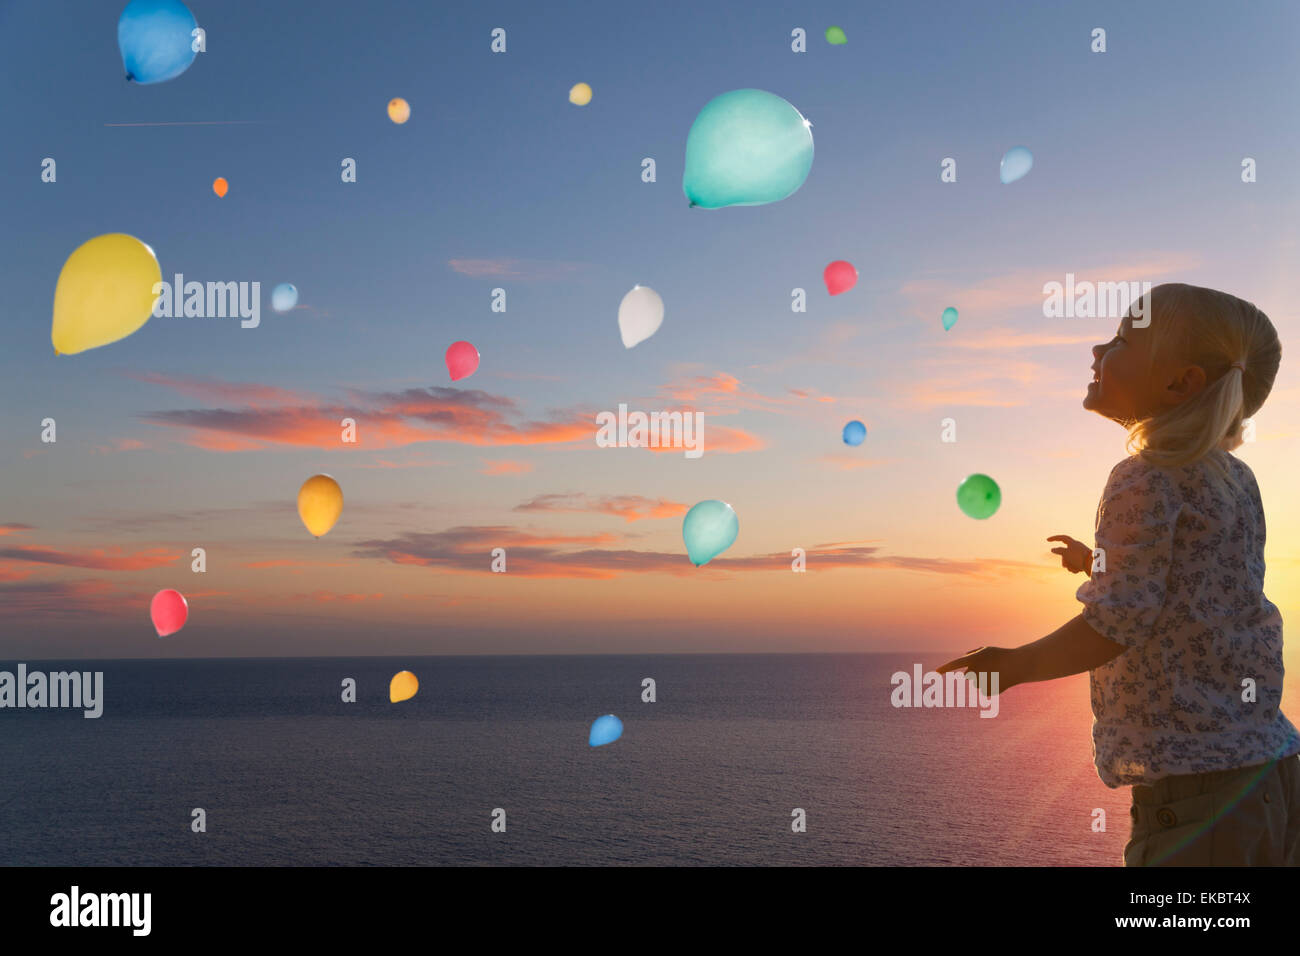 Girl watching balloons floating in evening sky - Stock Image